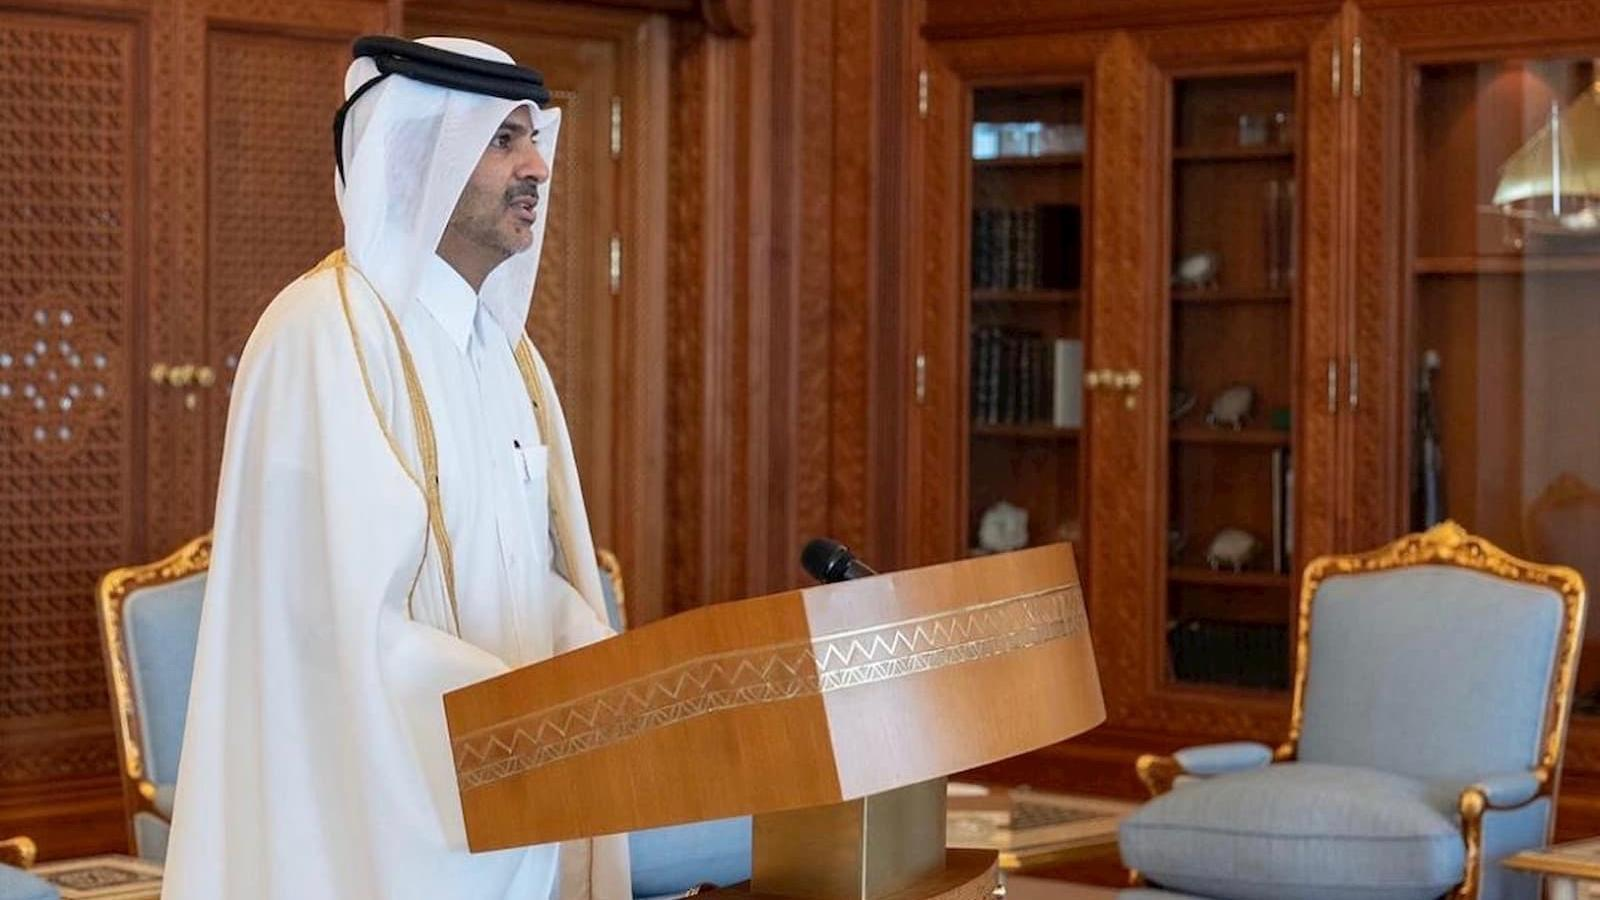 Cabinet issues draft law regulating healthcare services in Qatar